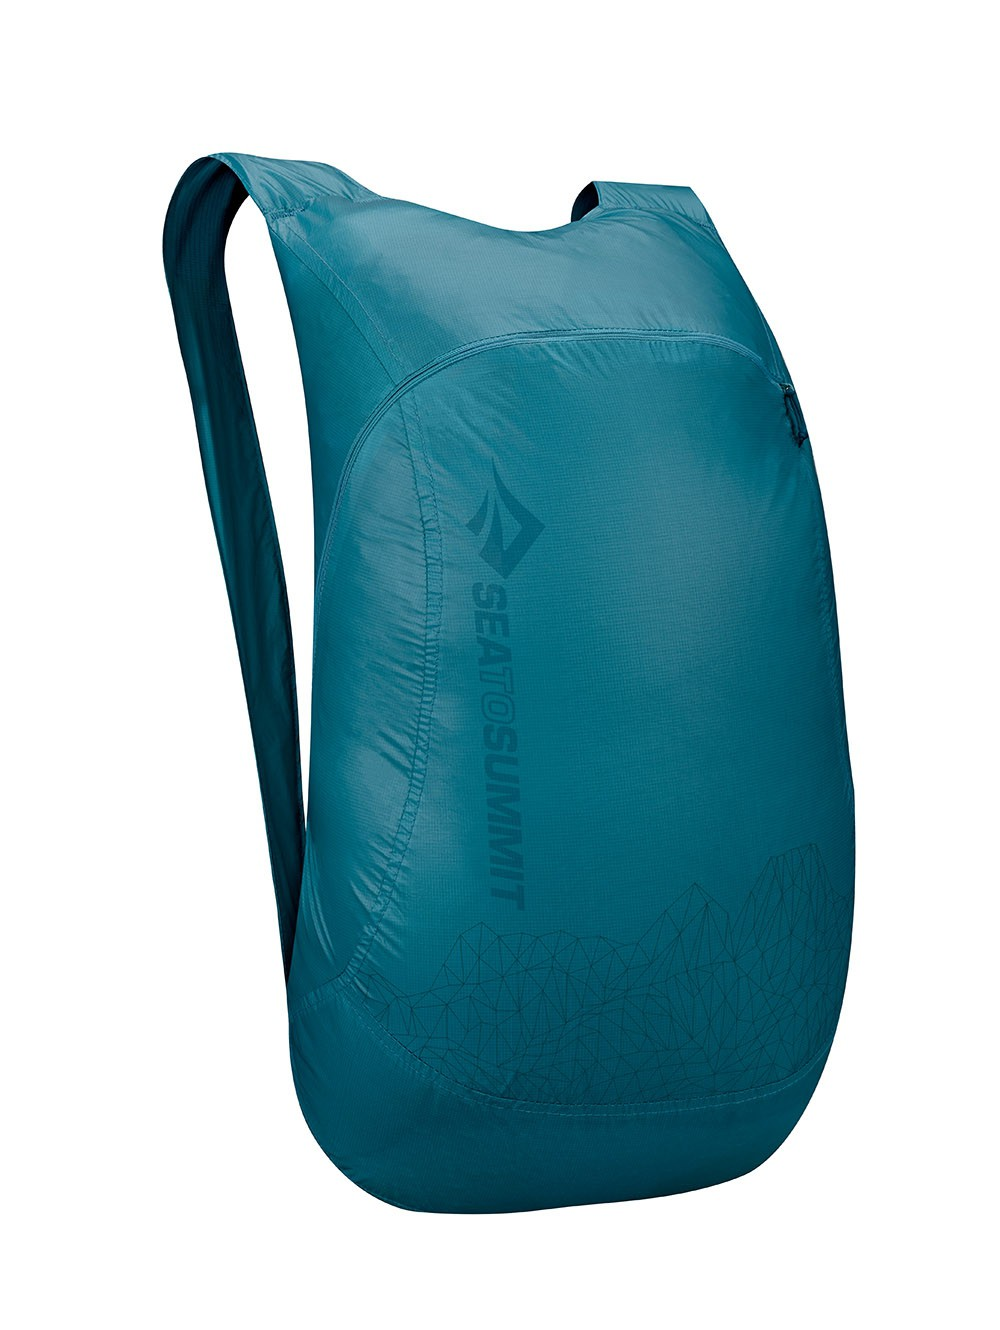 Sac à dos Sea To Summit Ultra Sil Nano DayPack